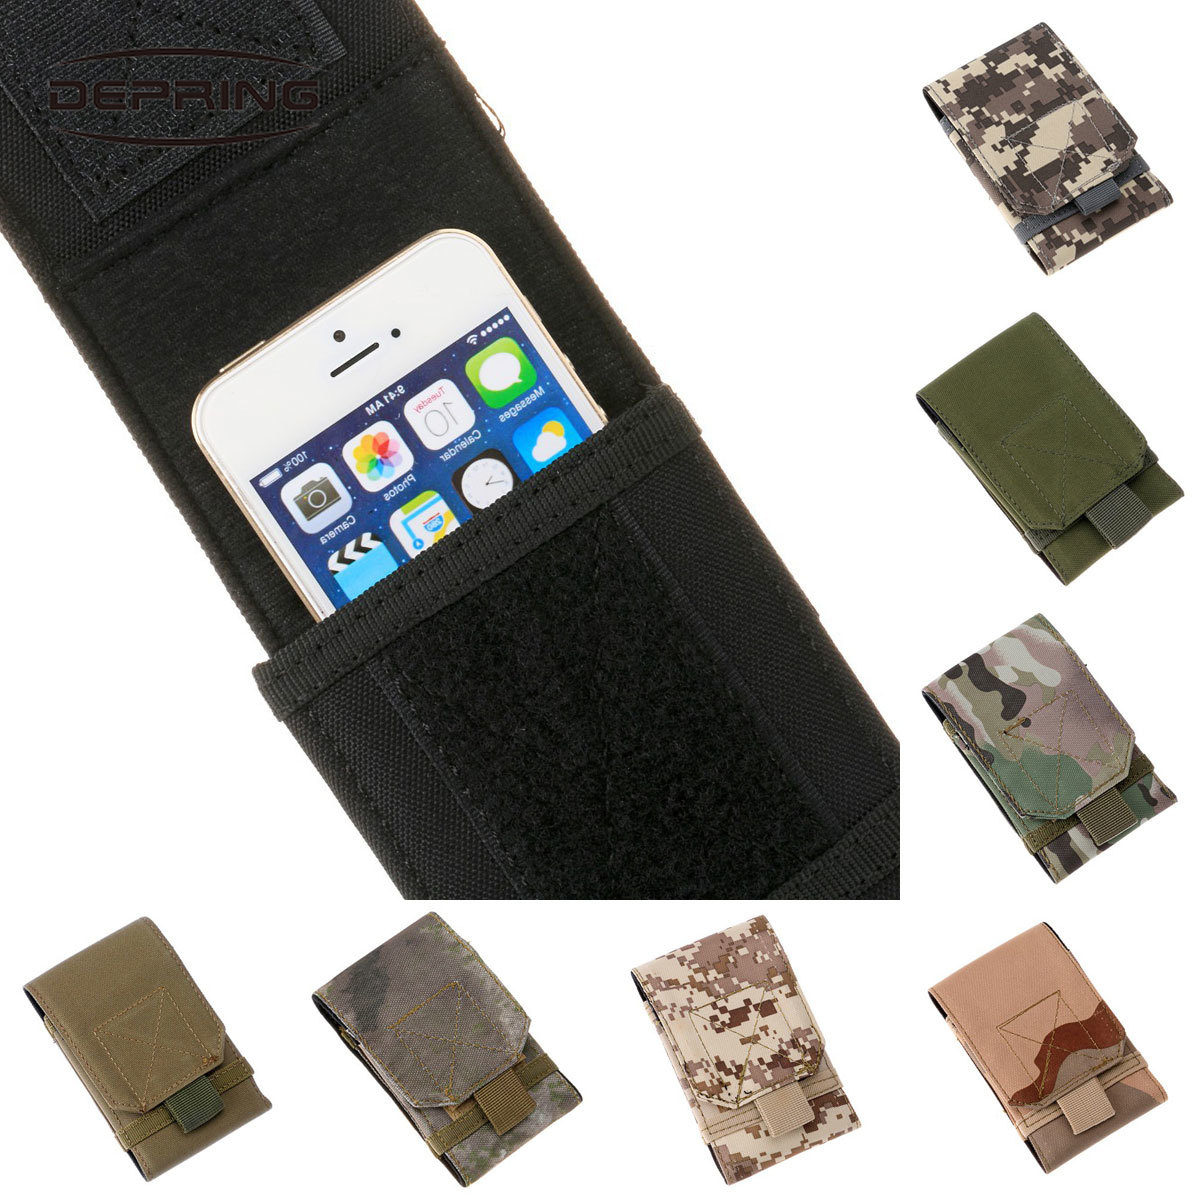 5.5 Inch Military MOLLE Carrying Bag Cell Phone Pouch Waist Pack Pouch Pocket For Outdoor Sports Nylon Utility Hunting Bag